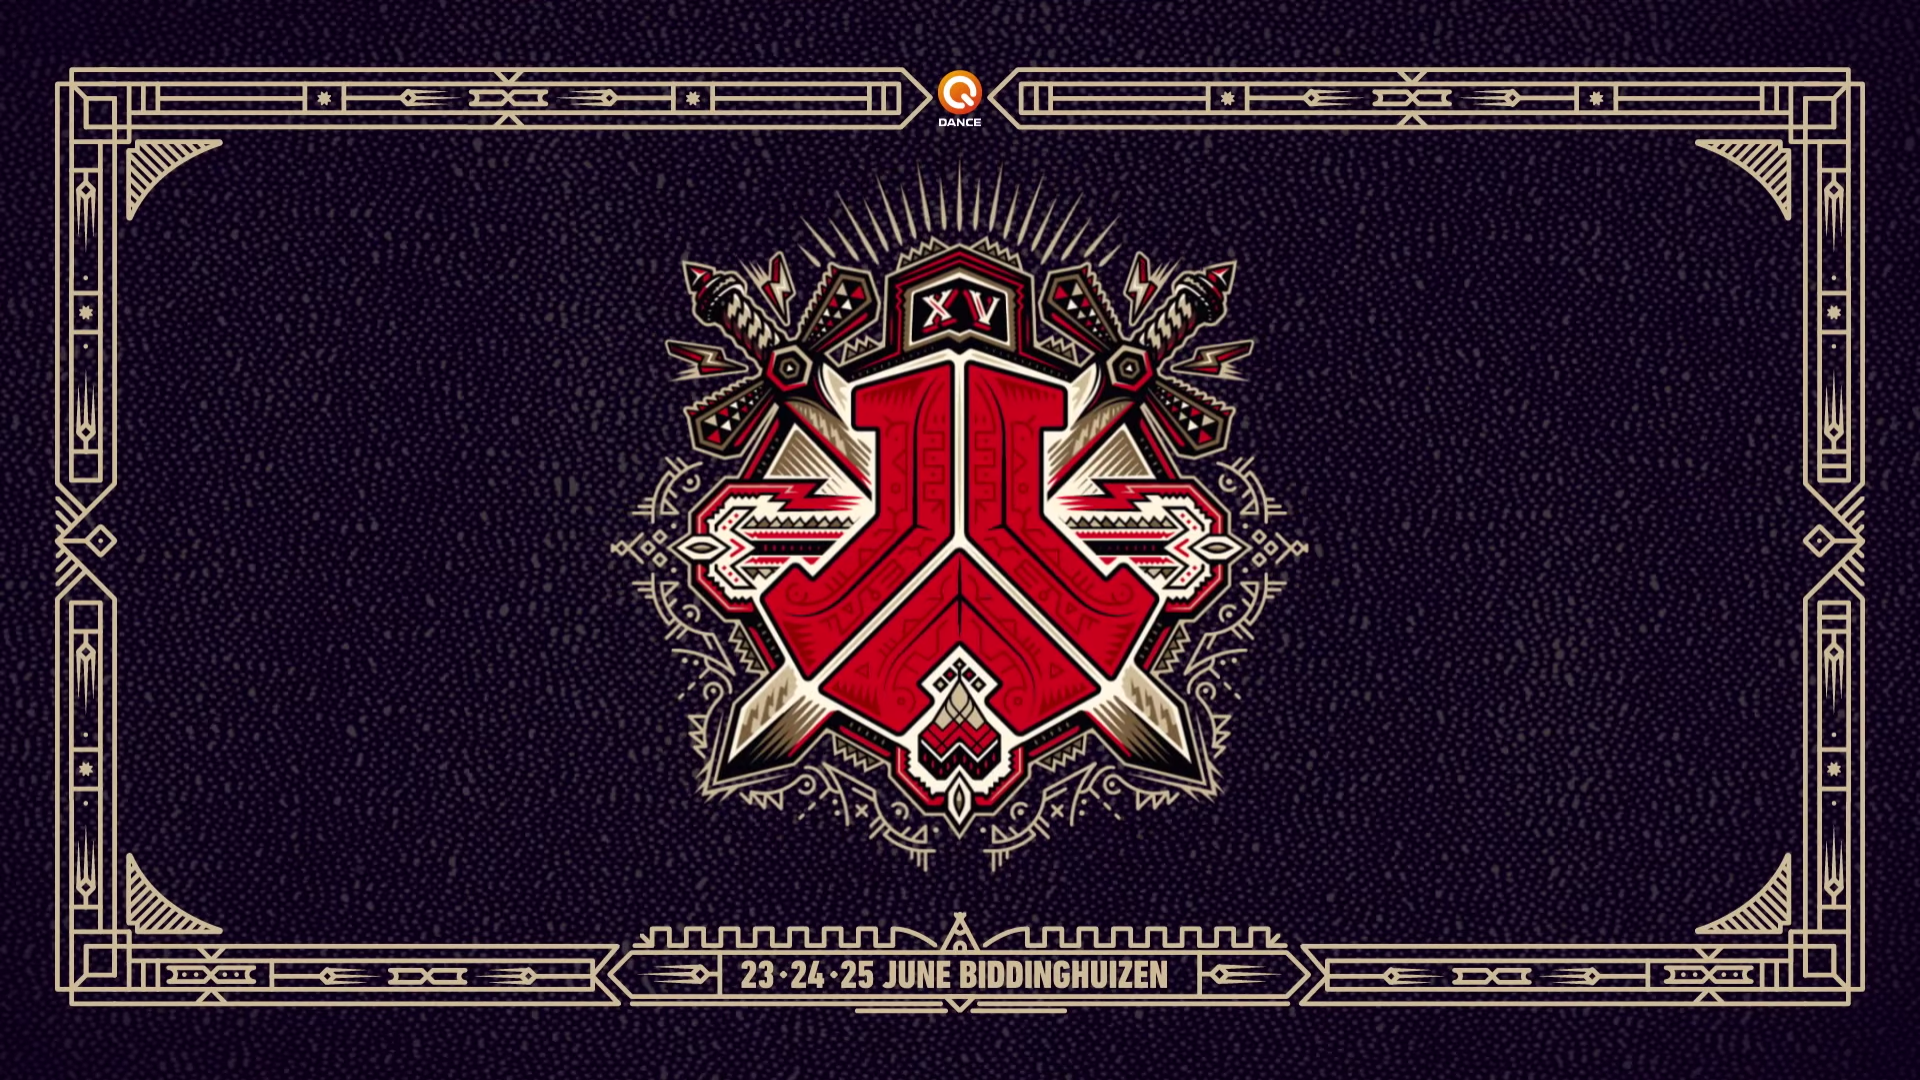 DEFQON1 2017 logo wallpaper hardstyle 1920x1080